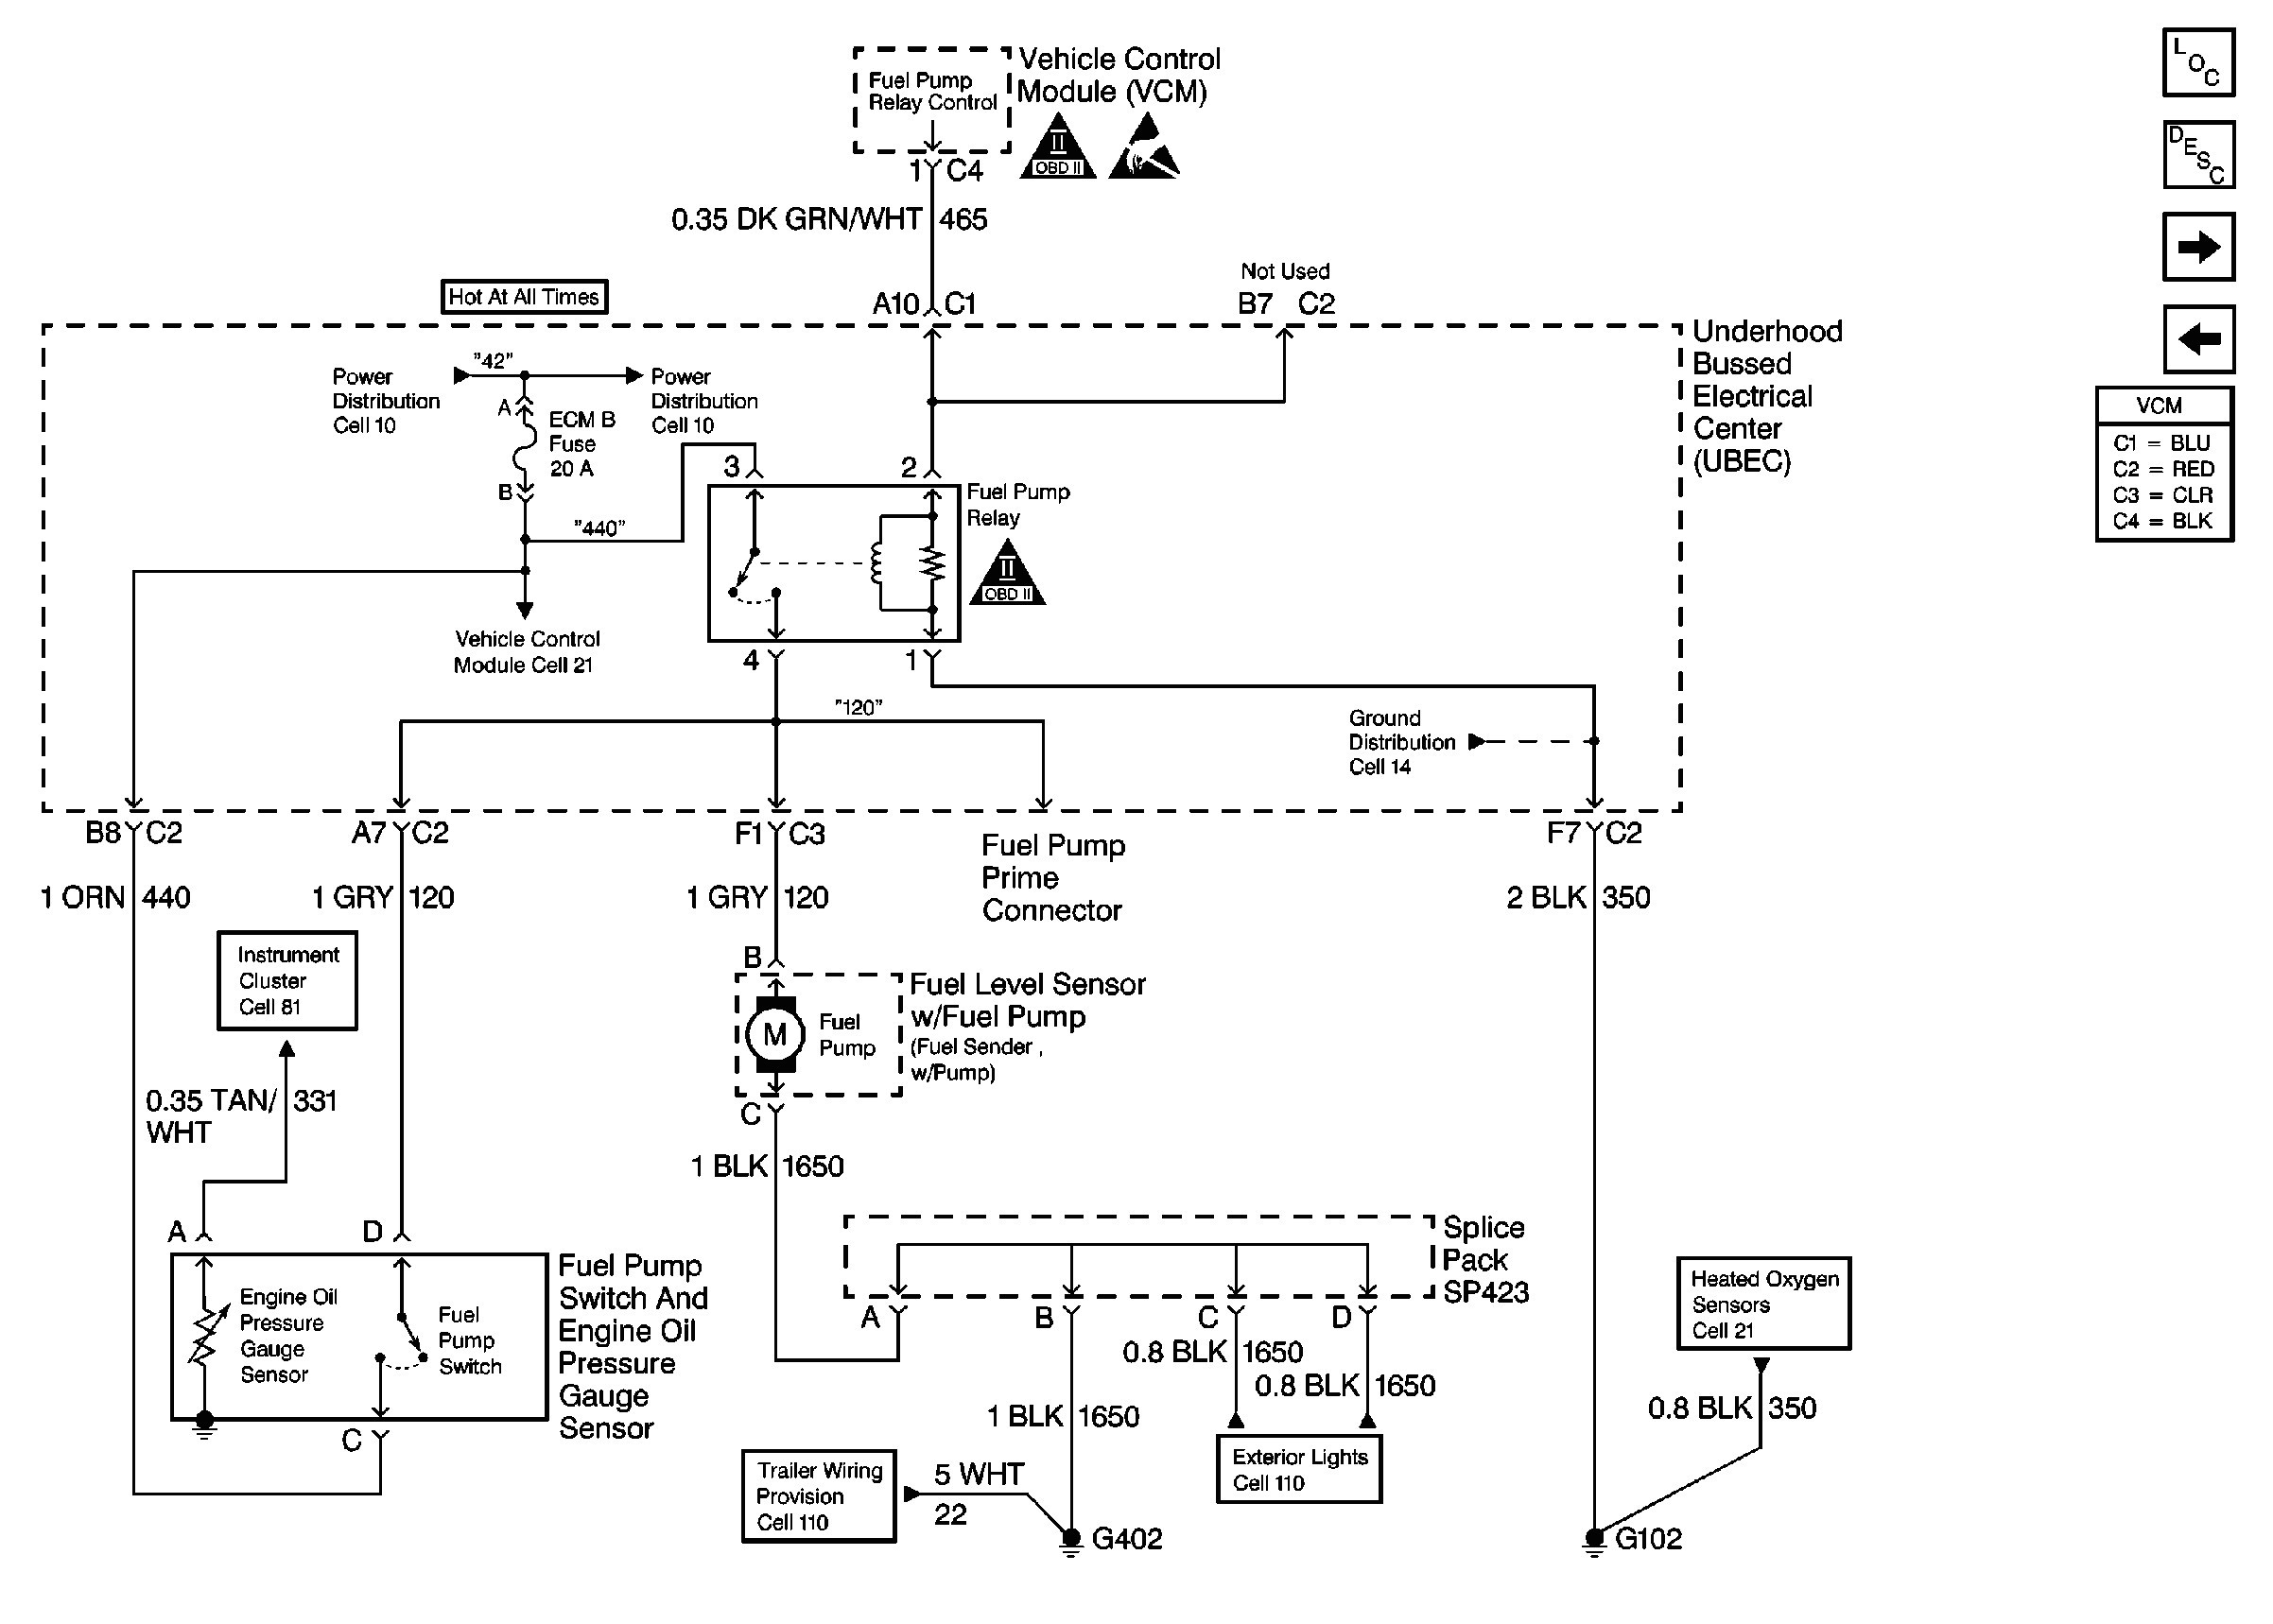 2002 Chevy Tahoe Engine Diagram Awesome Fuel Pump Wiring Harness Diagram Diagram Of 2002 Chevy Tahoe Engine Diagram